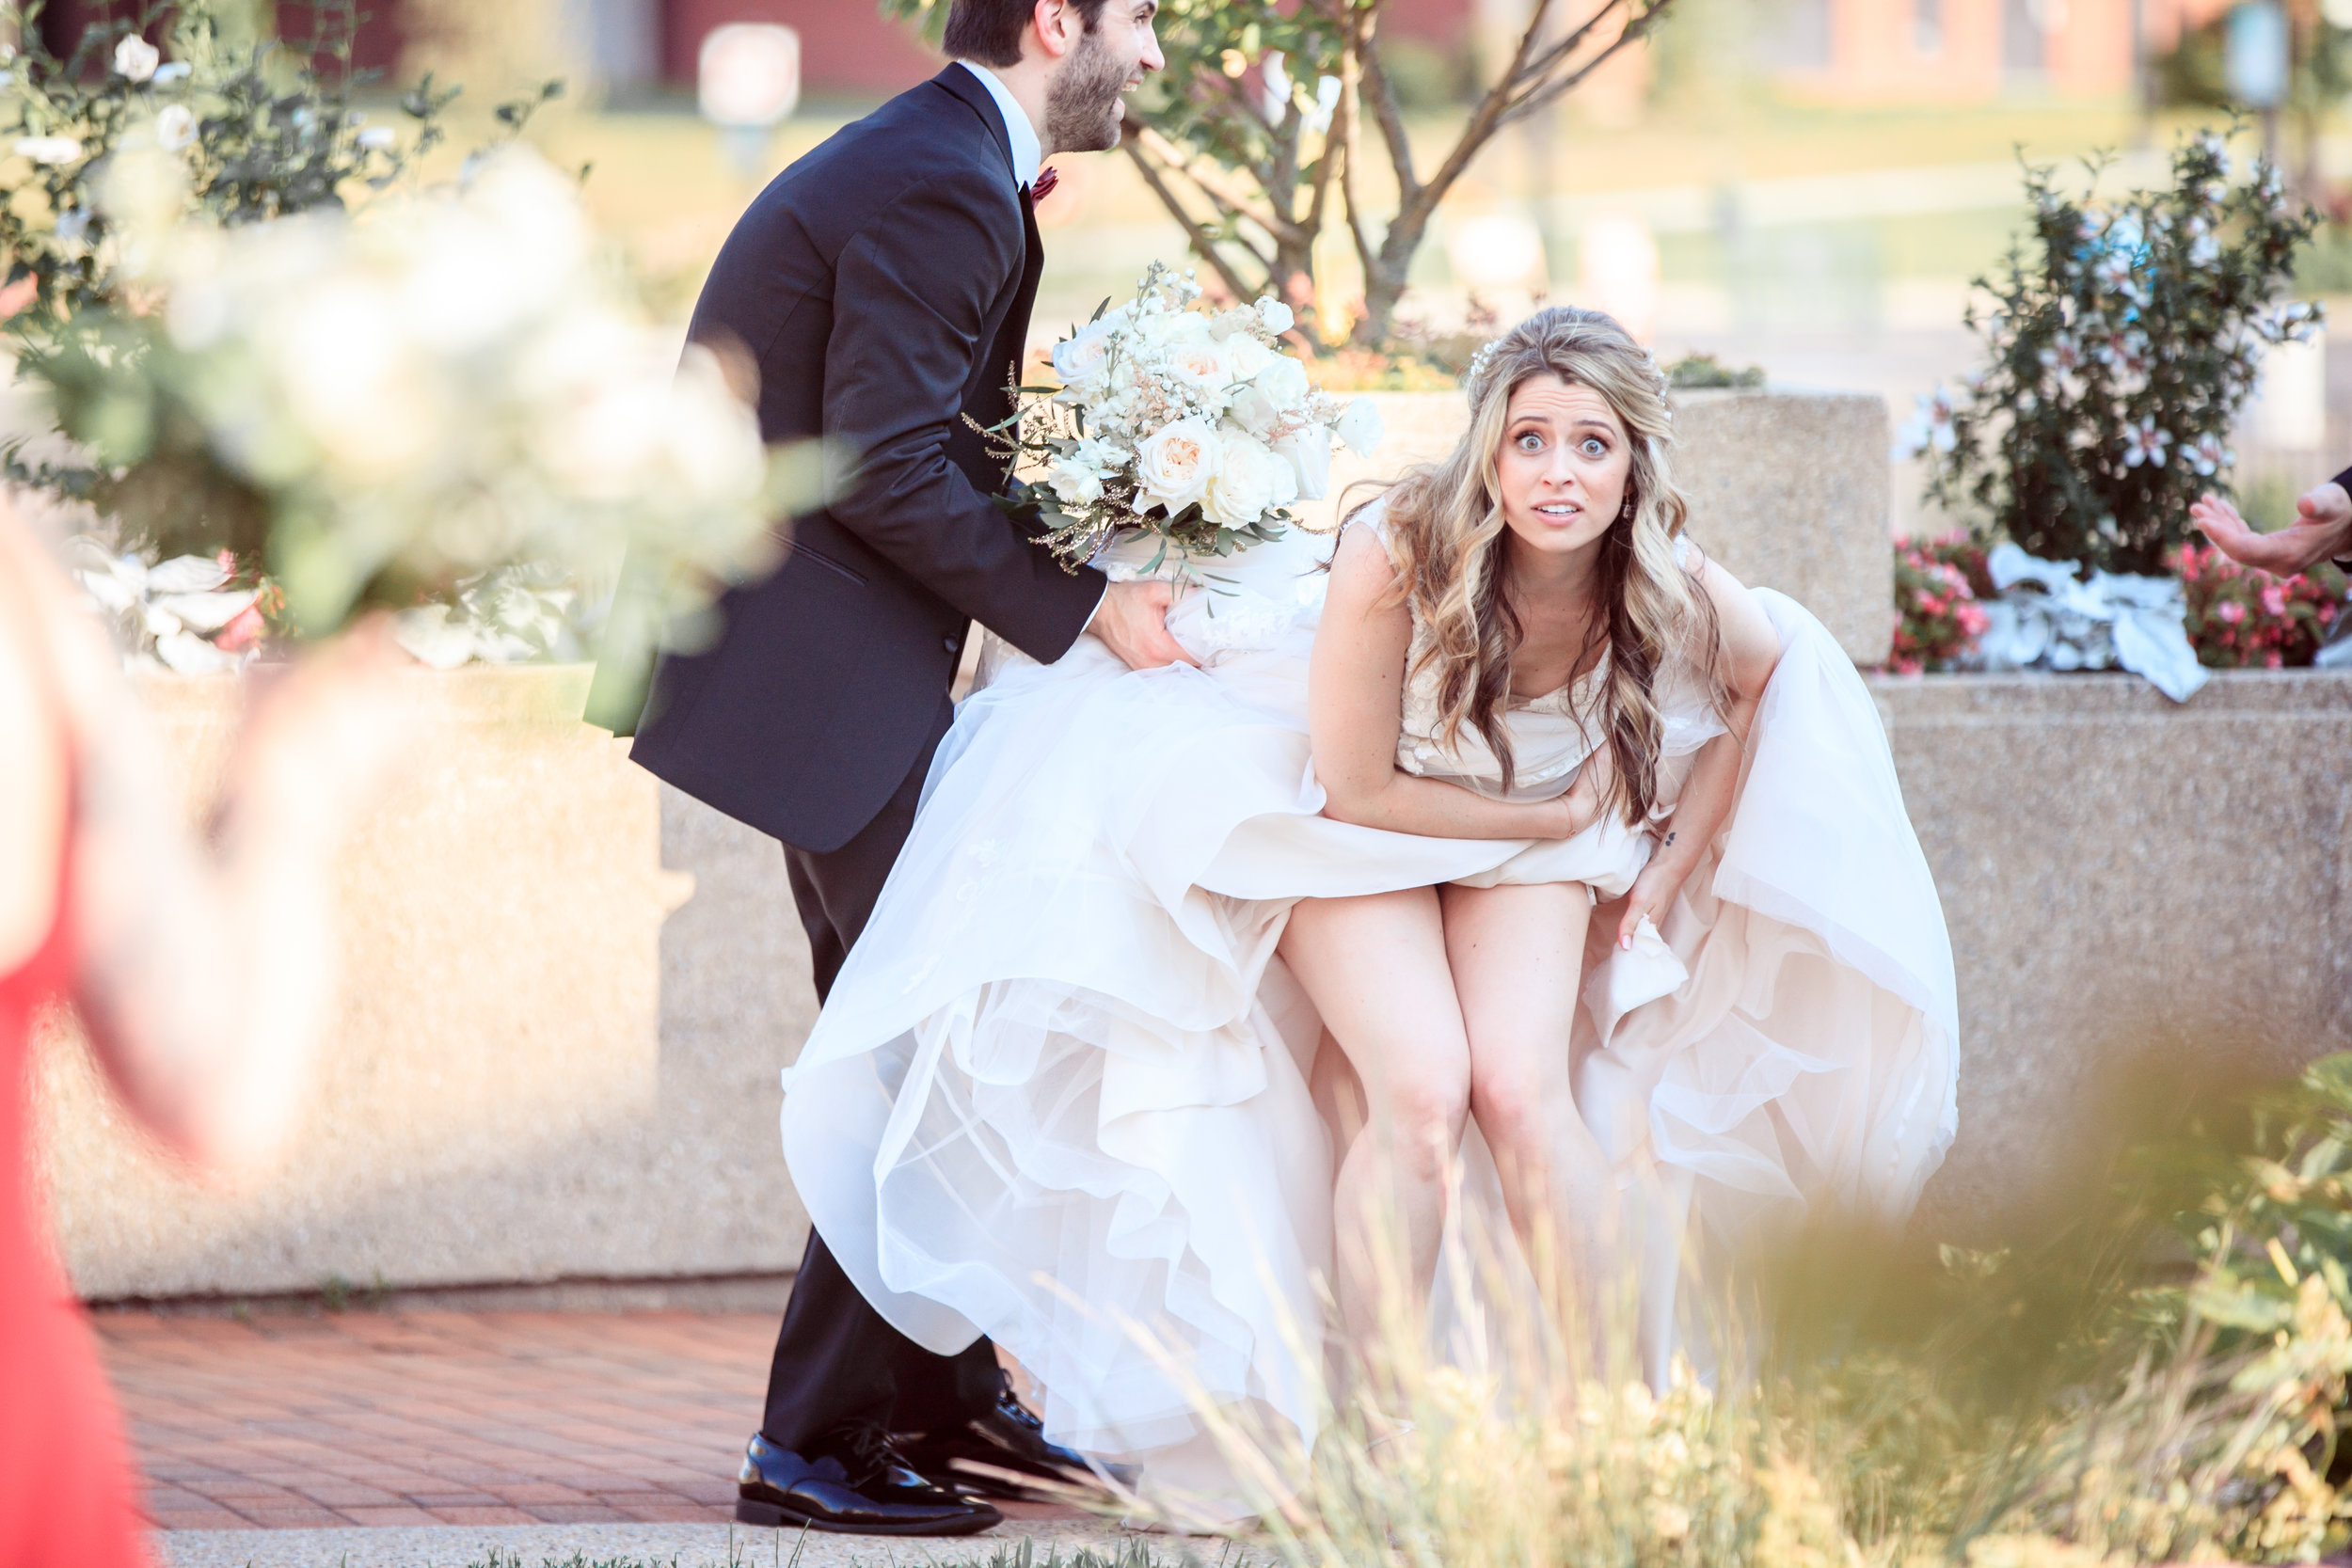 Hilarious-funny-bride-and-groom-take-wedding-photos-to-next-level49.jpg